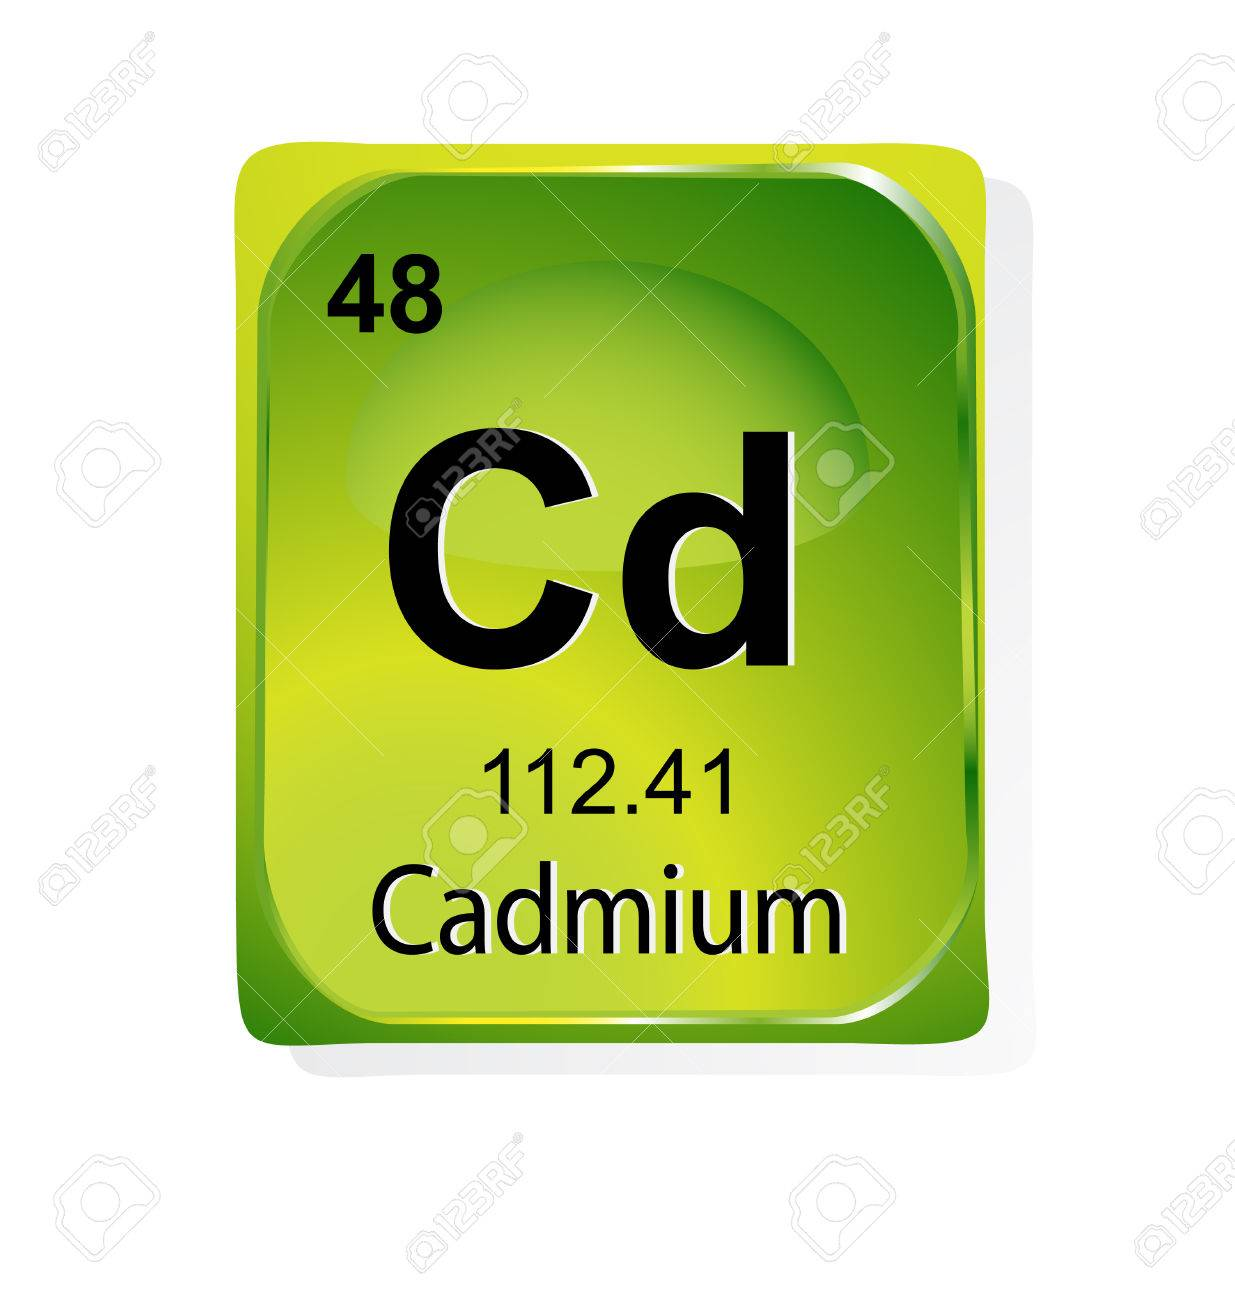 Cadmium Chemical Element With Atomic Number Symbol And Weight